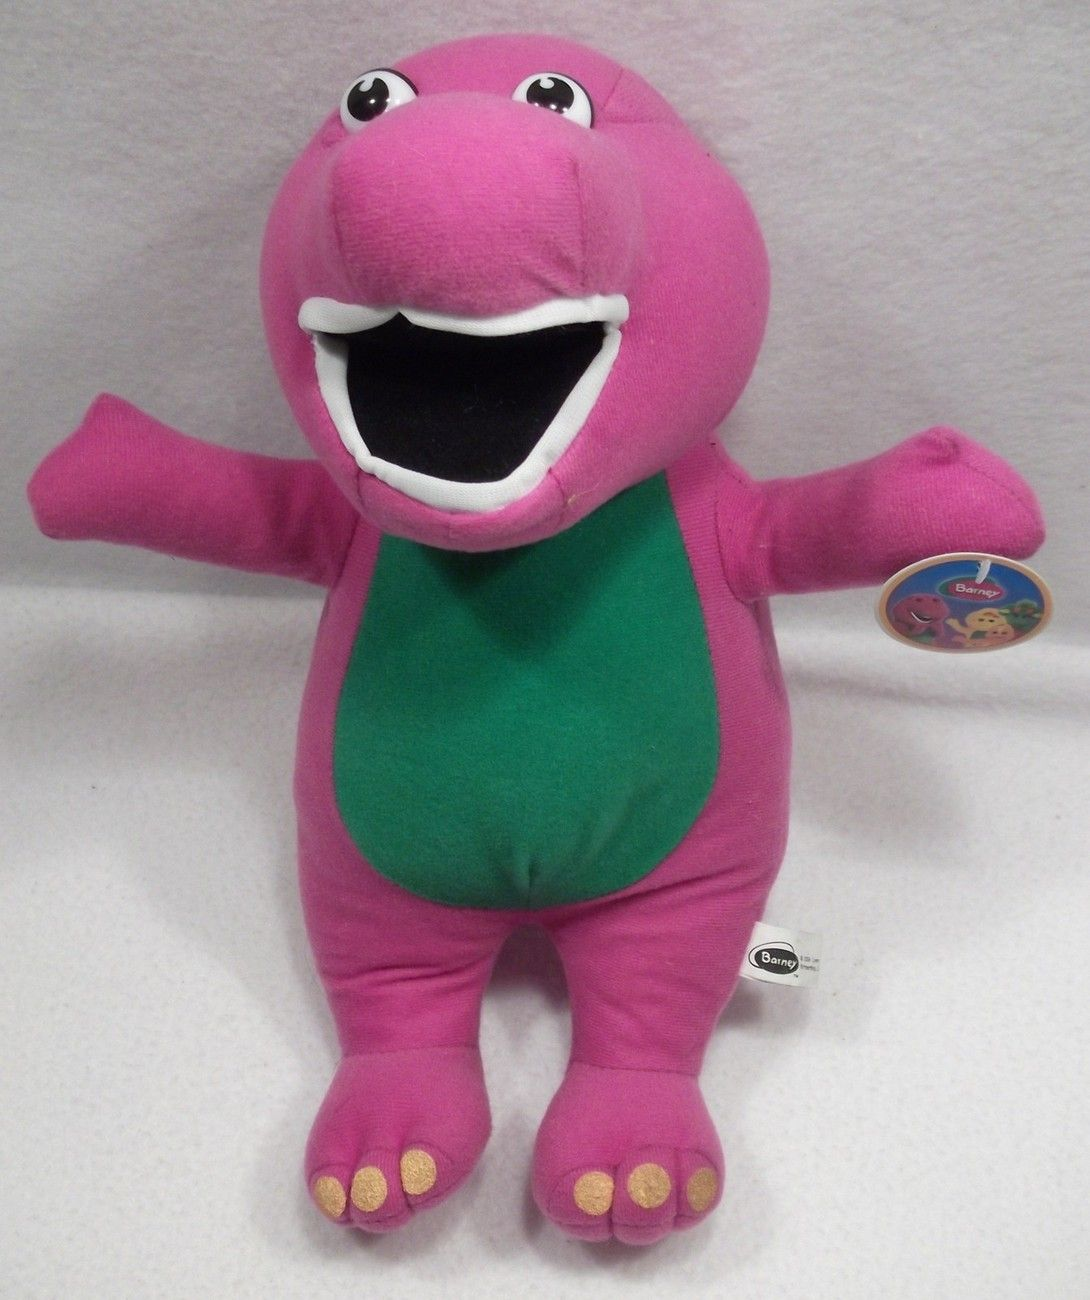 2006 barney the purple dinosaur 13